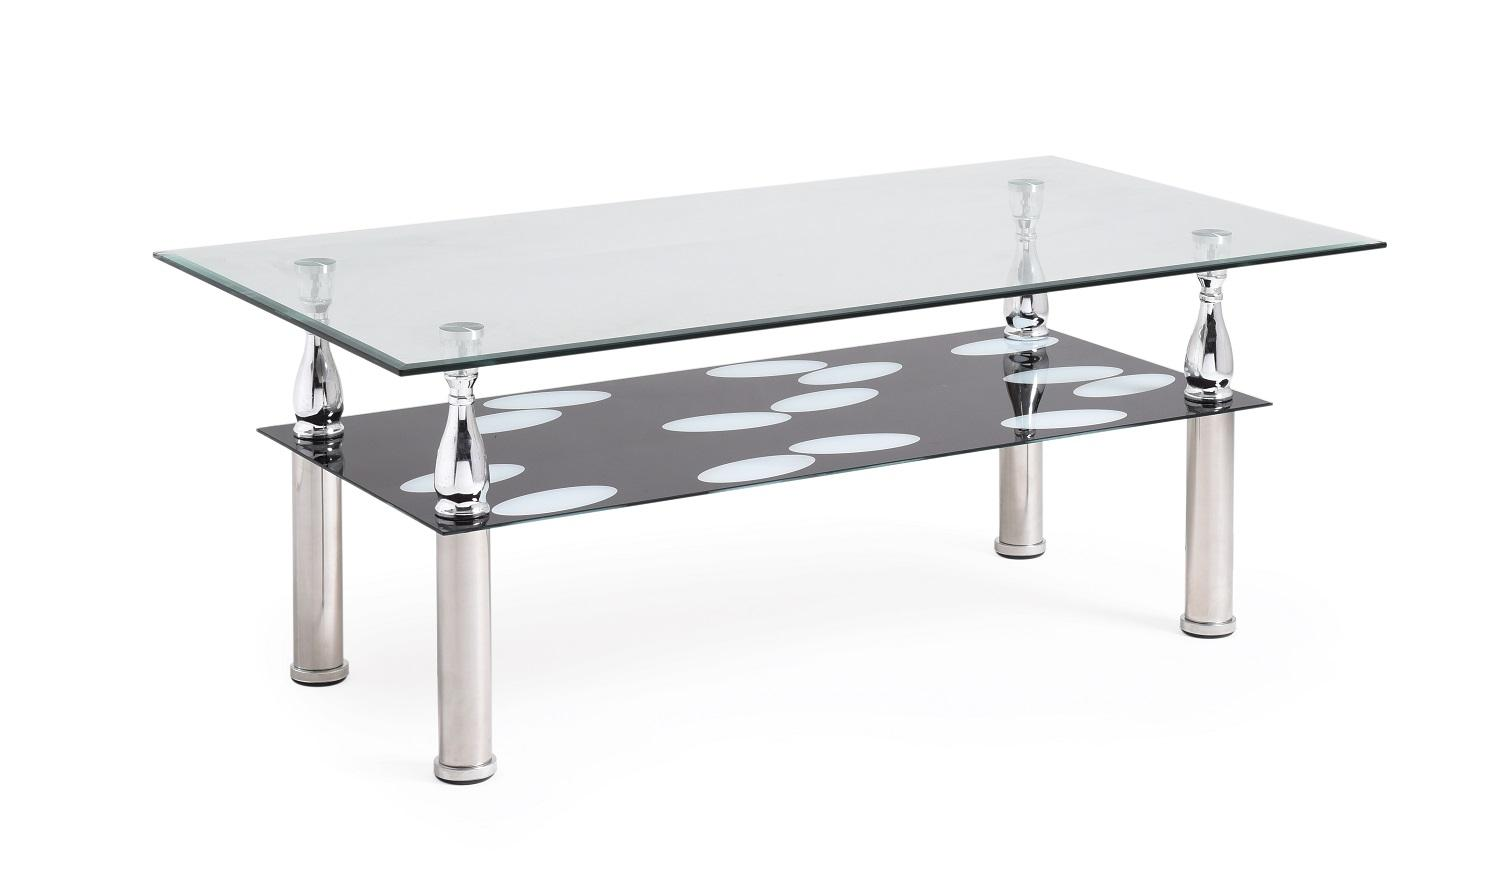 Hodedah Two Tier Rectangle Tempered Glass Coffee Table Kitchen Dining